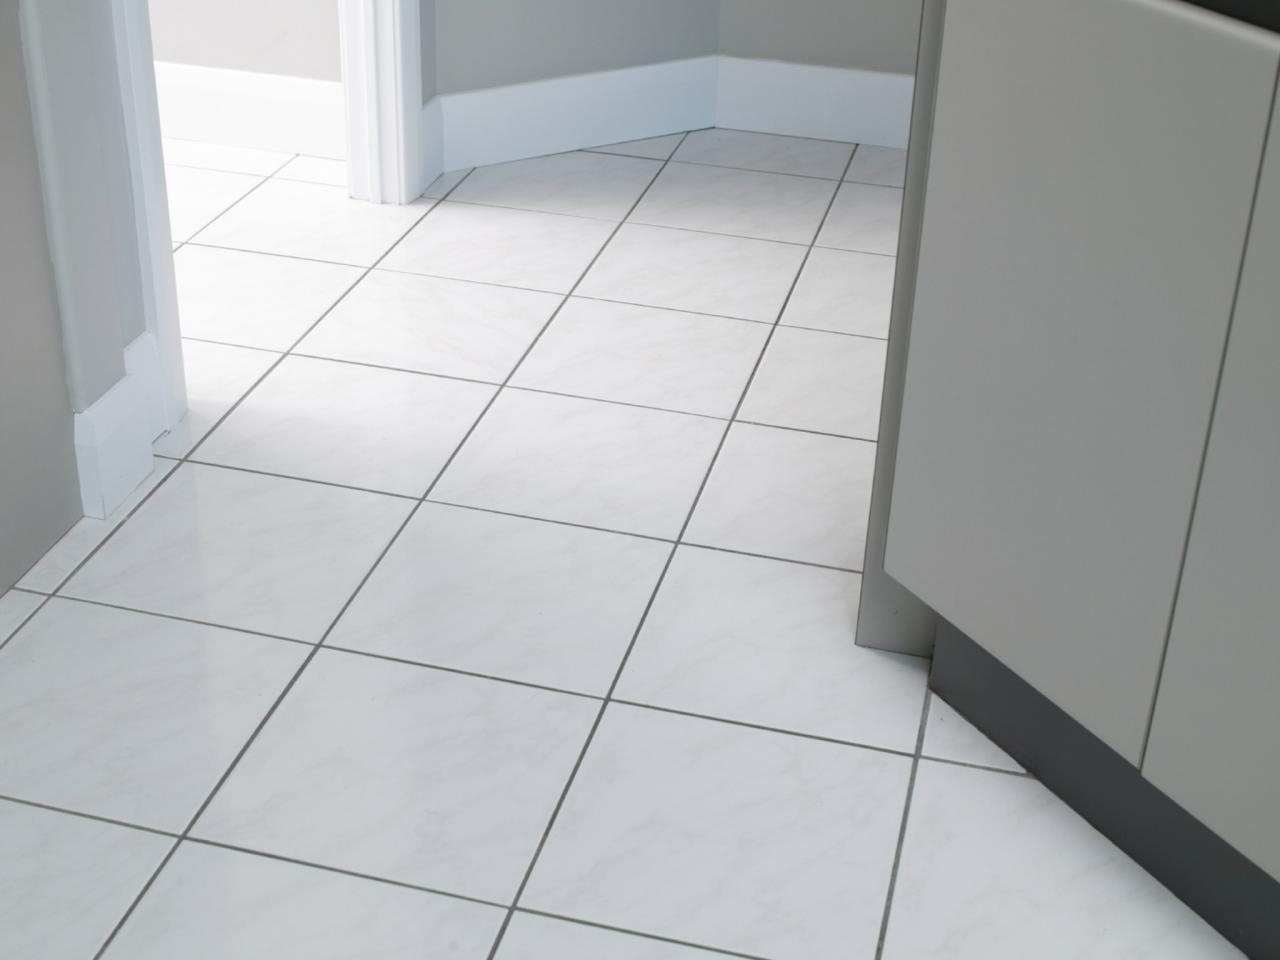 Ceramic tile sealing substrate solutions flooring for How to clean cement floors in house